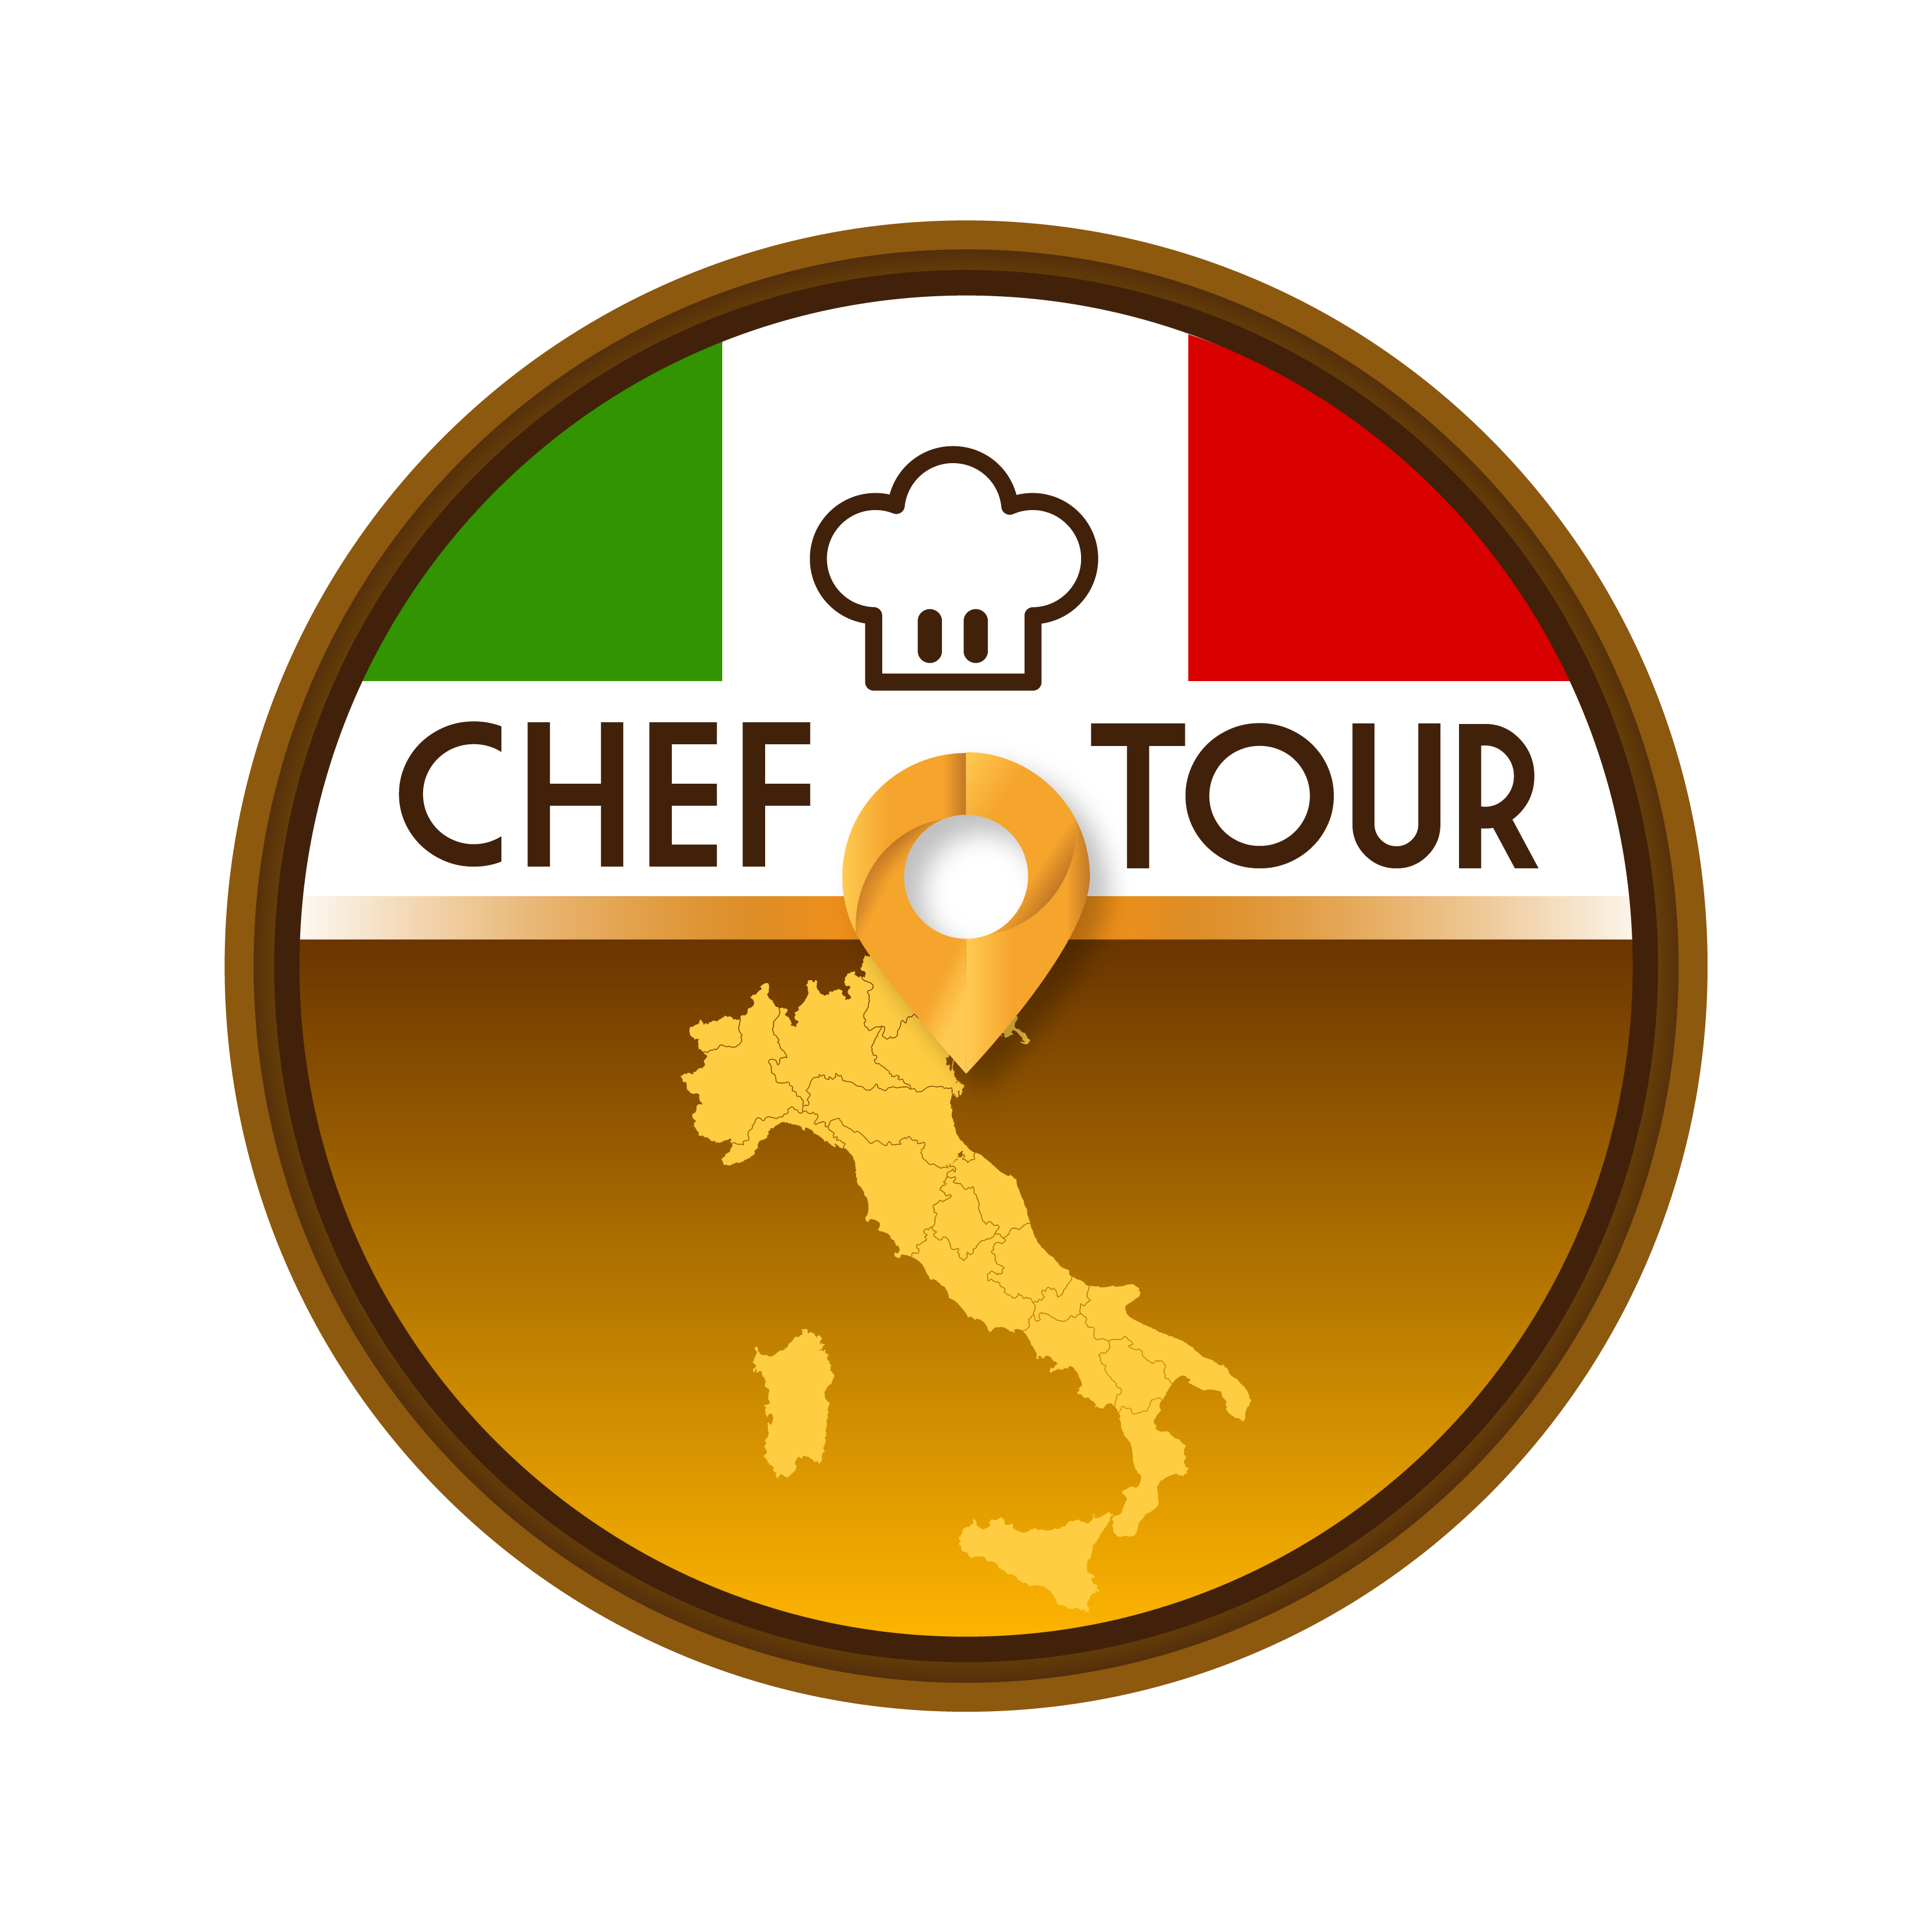 tourissimo_chef_tours.png